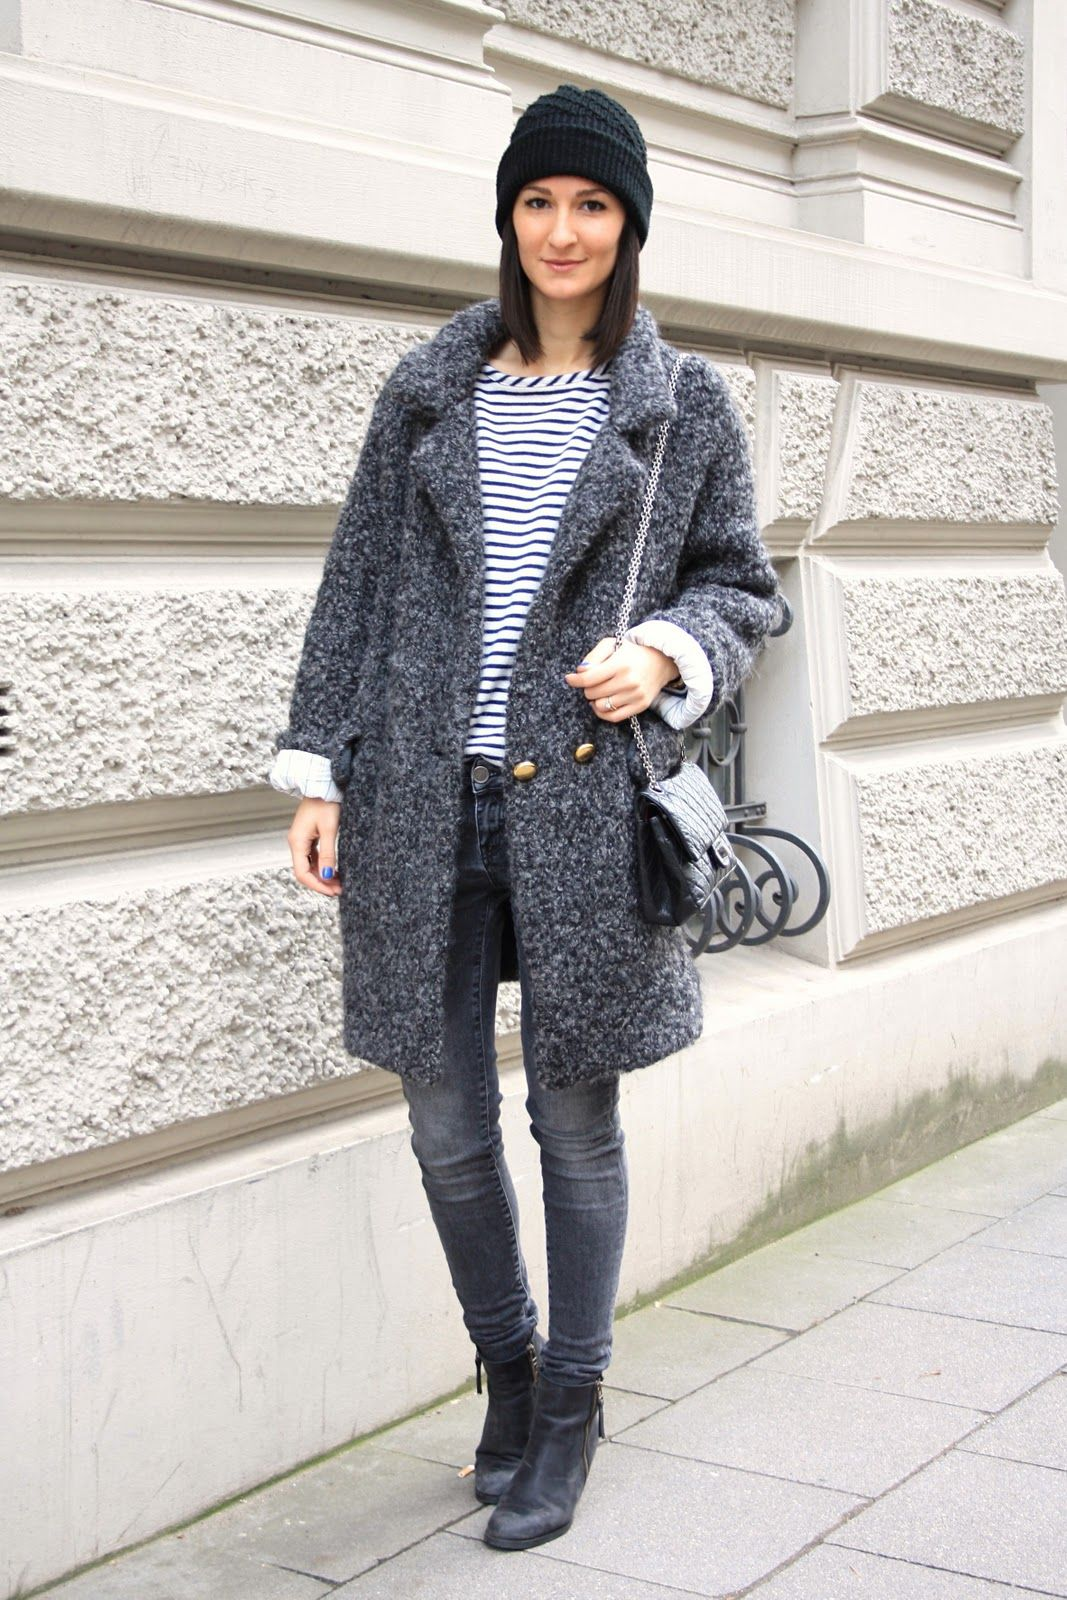 Oversize Striped Sweater Zara Dark Grey Skinny Jeans Zara Oversize Wool Coat Marc By Marc